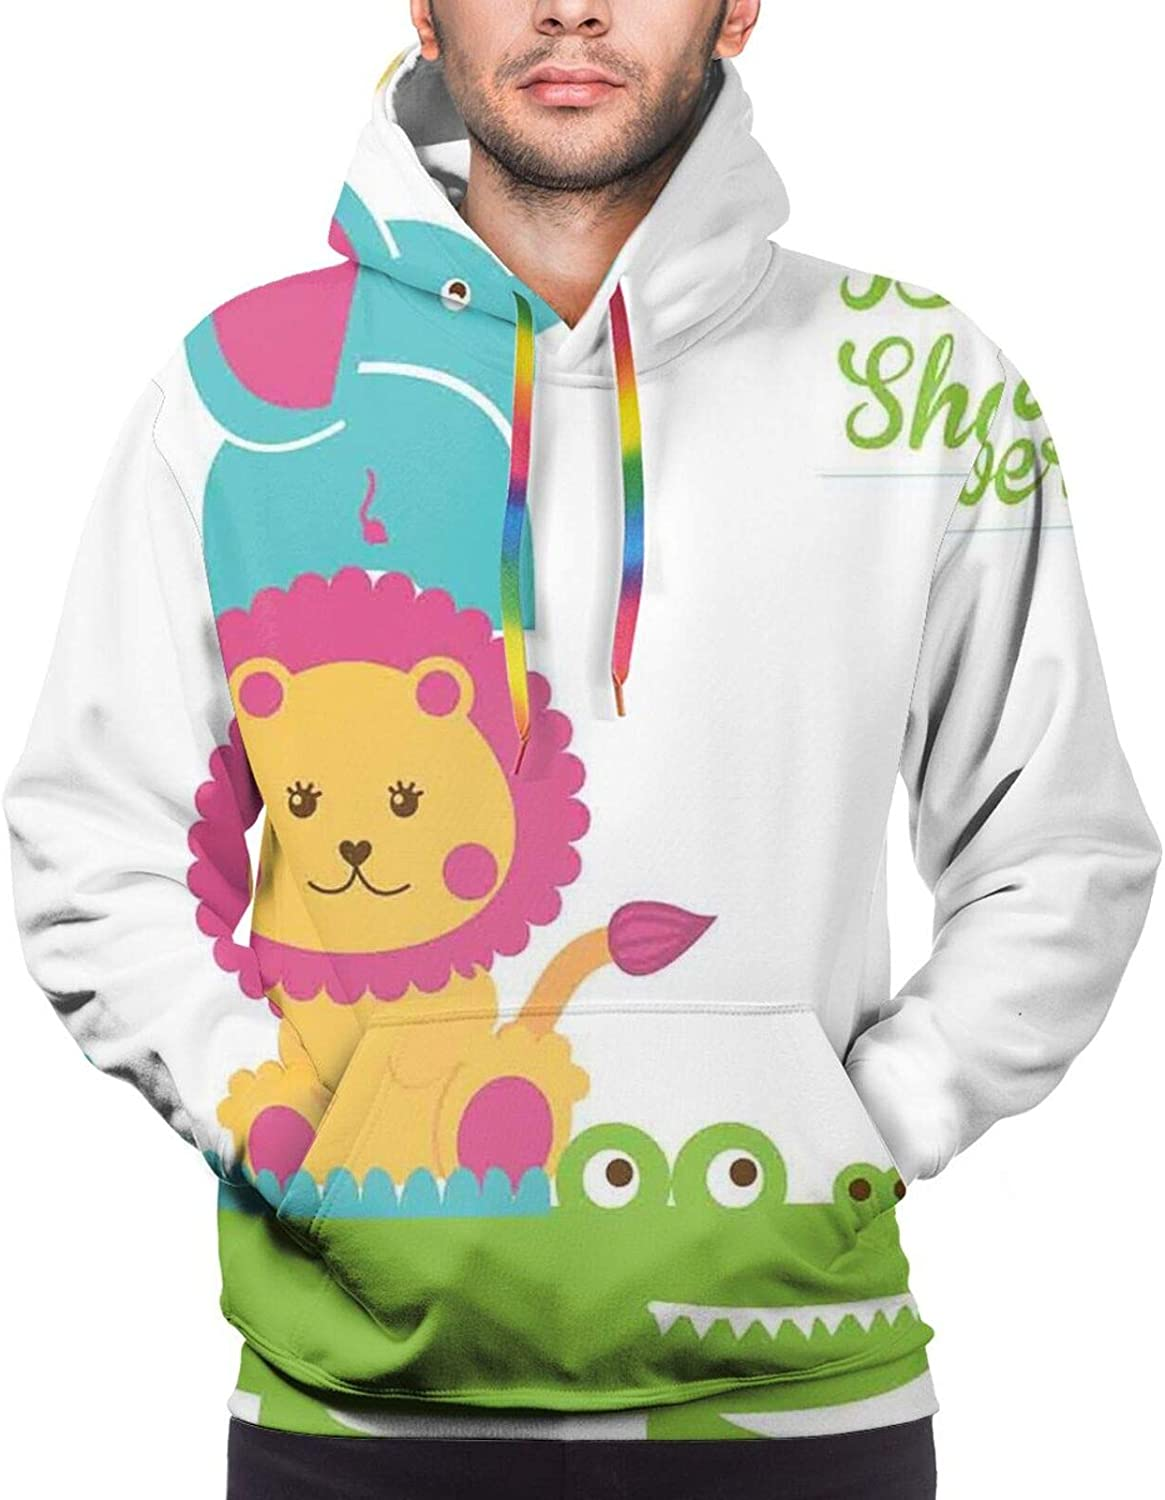 Men's Hoodies Sweatshirts,Croatian Lake Landscape in Forest with Mountain View Background Work of Art